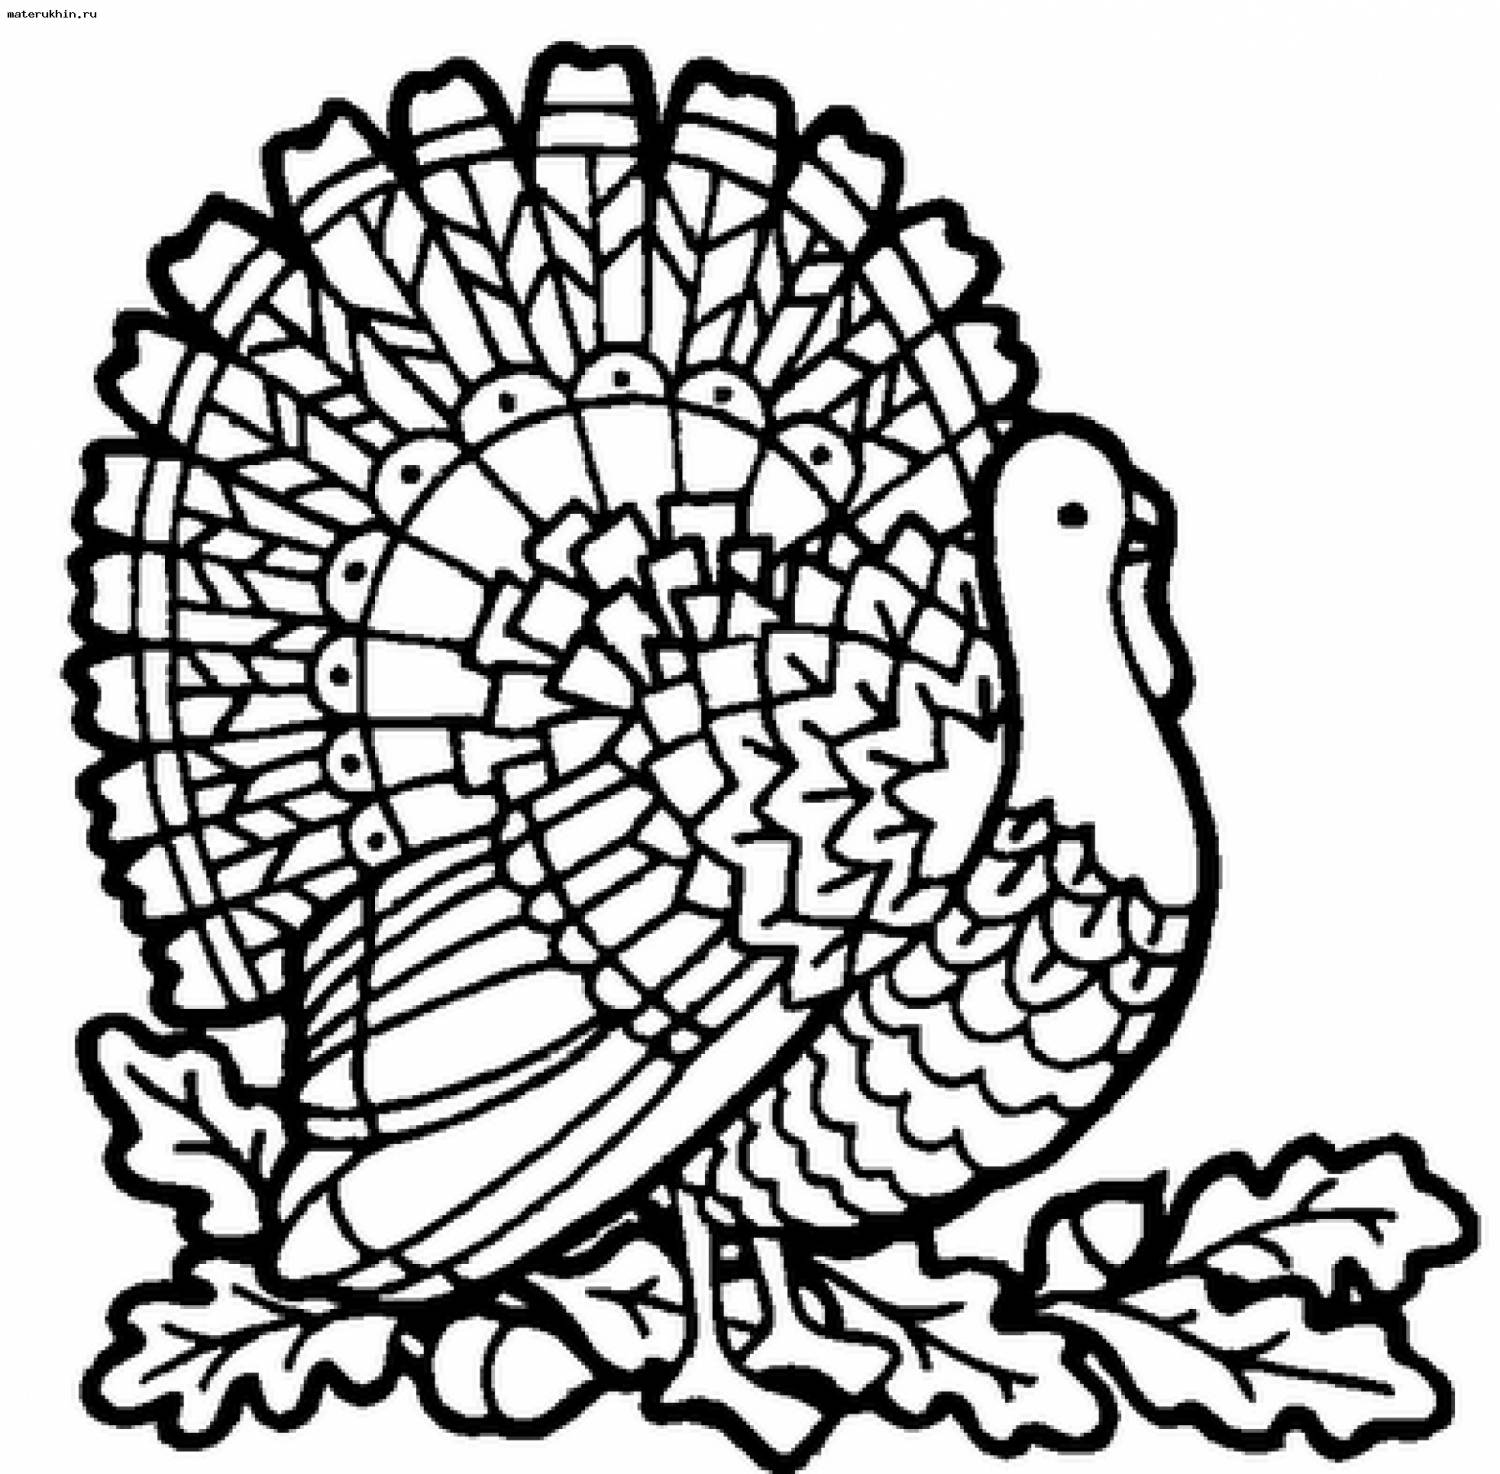 thanksgiving color page christian thanksgiving coloring pages getcoloringpagescom color thanksgiving page